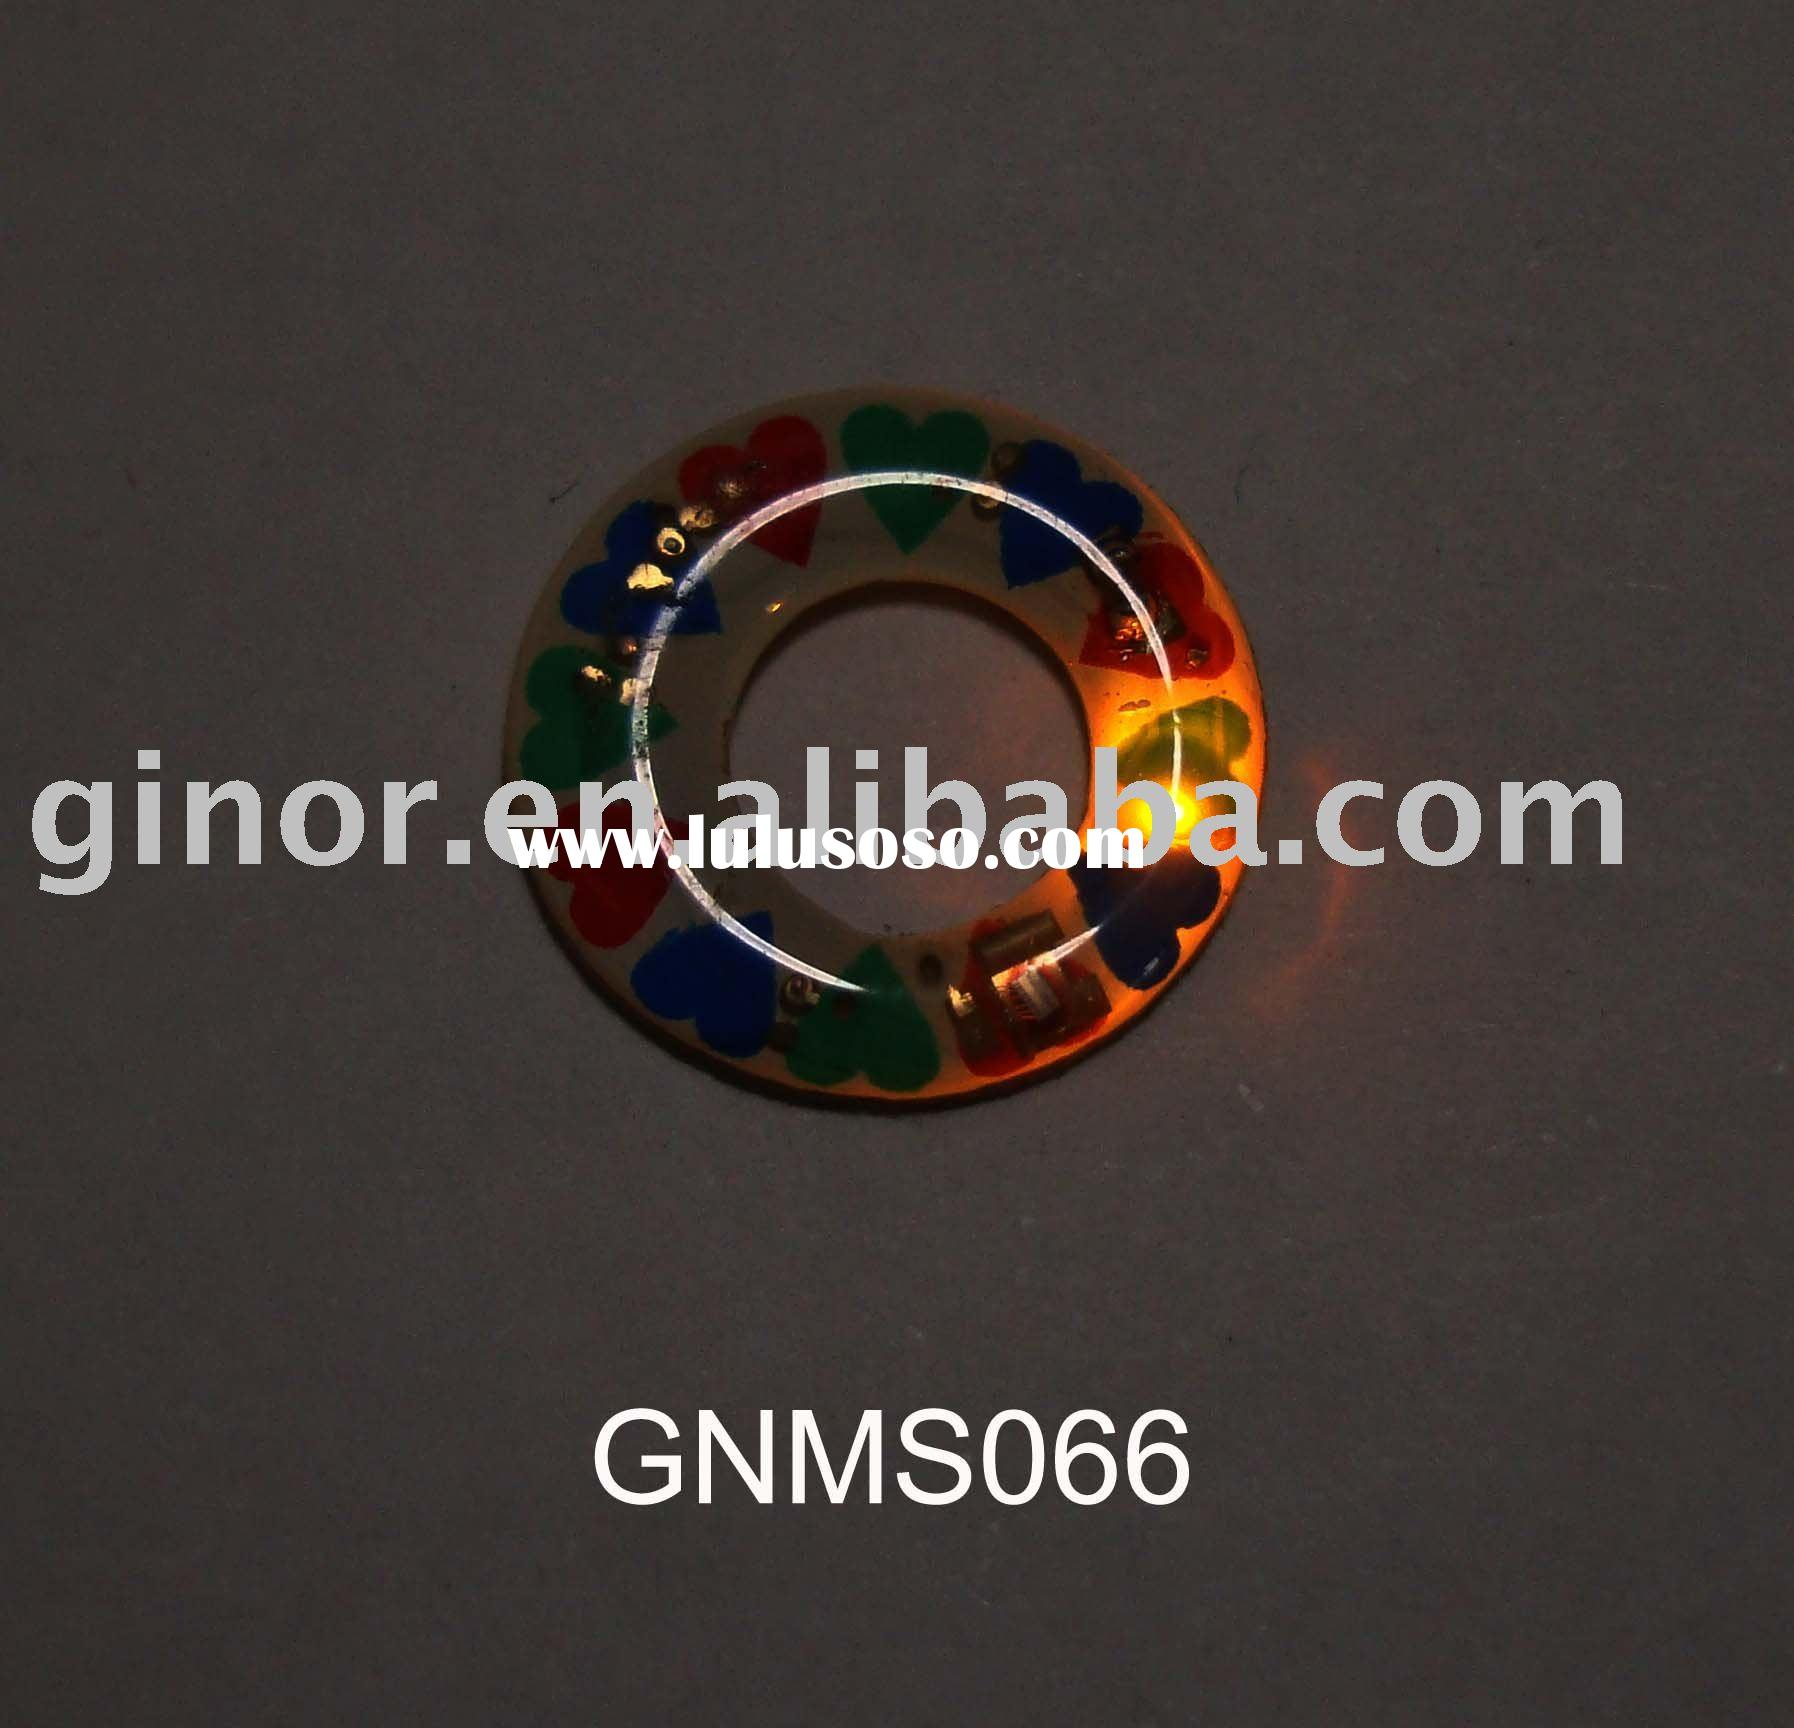 led phone sticker, led phone sticker Manufacturers in LuLuSoSo com